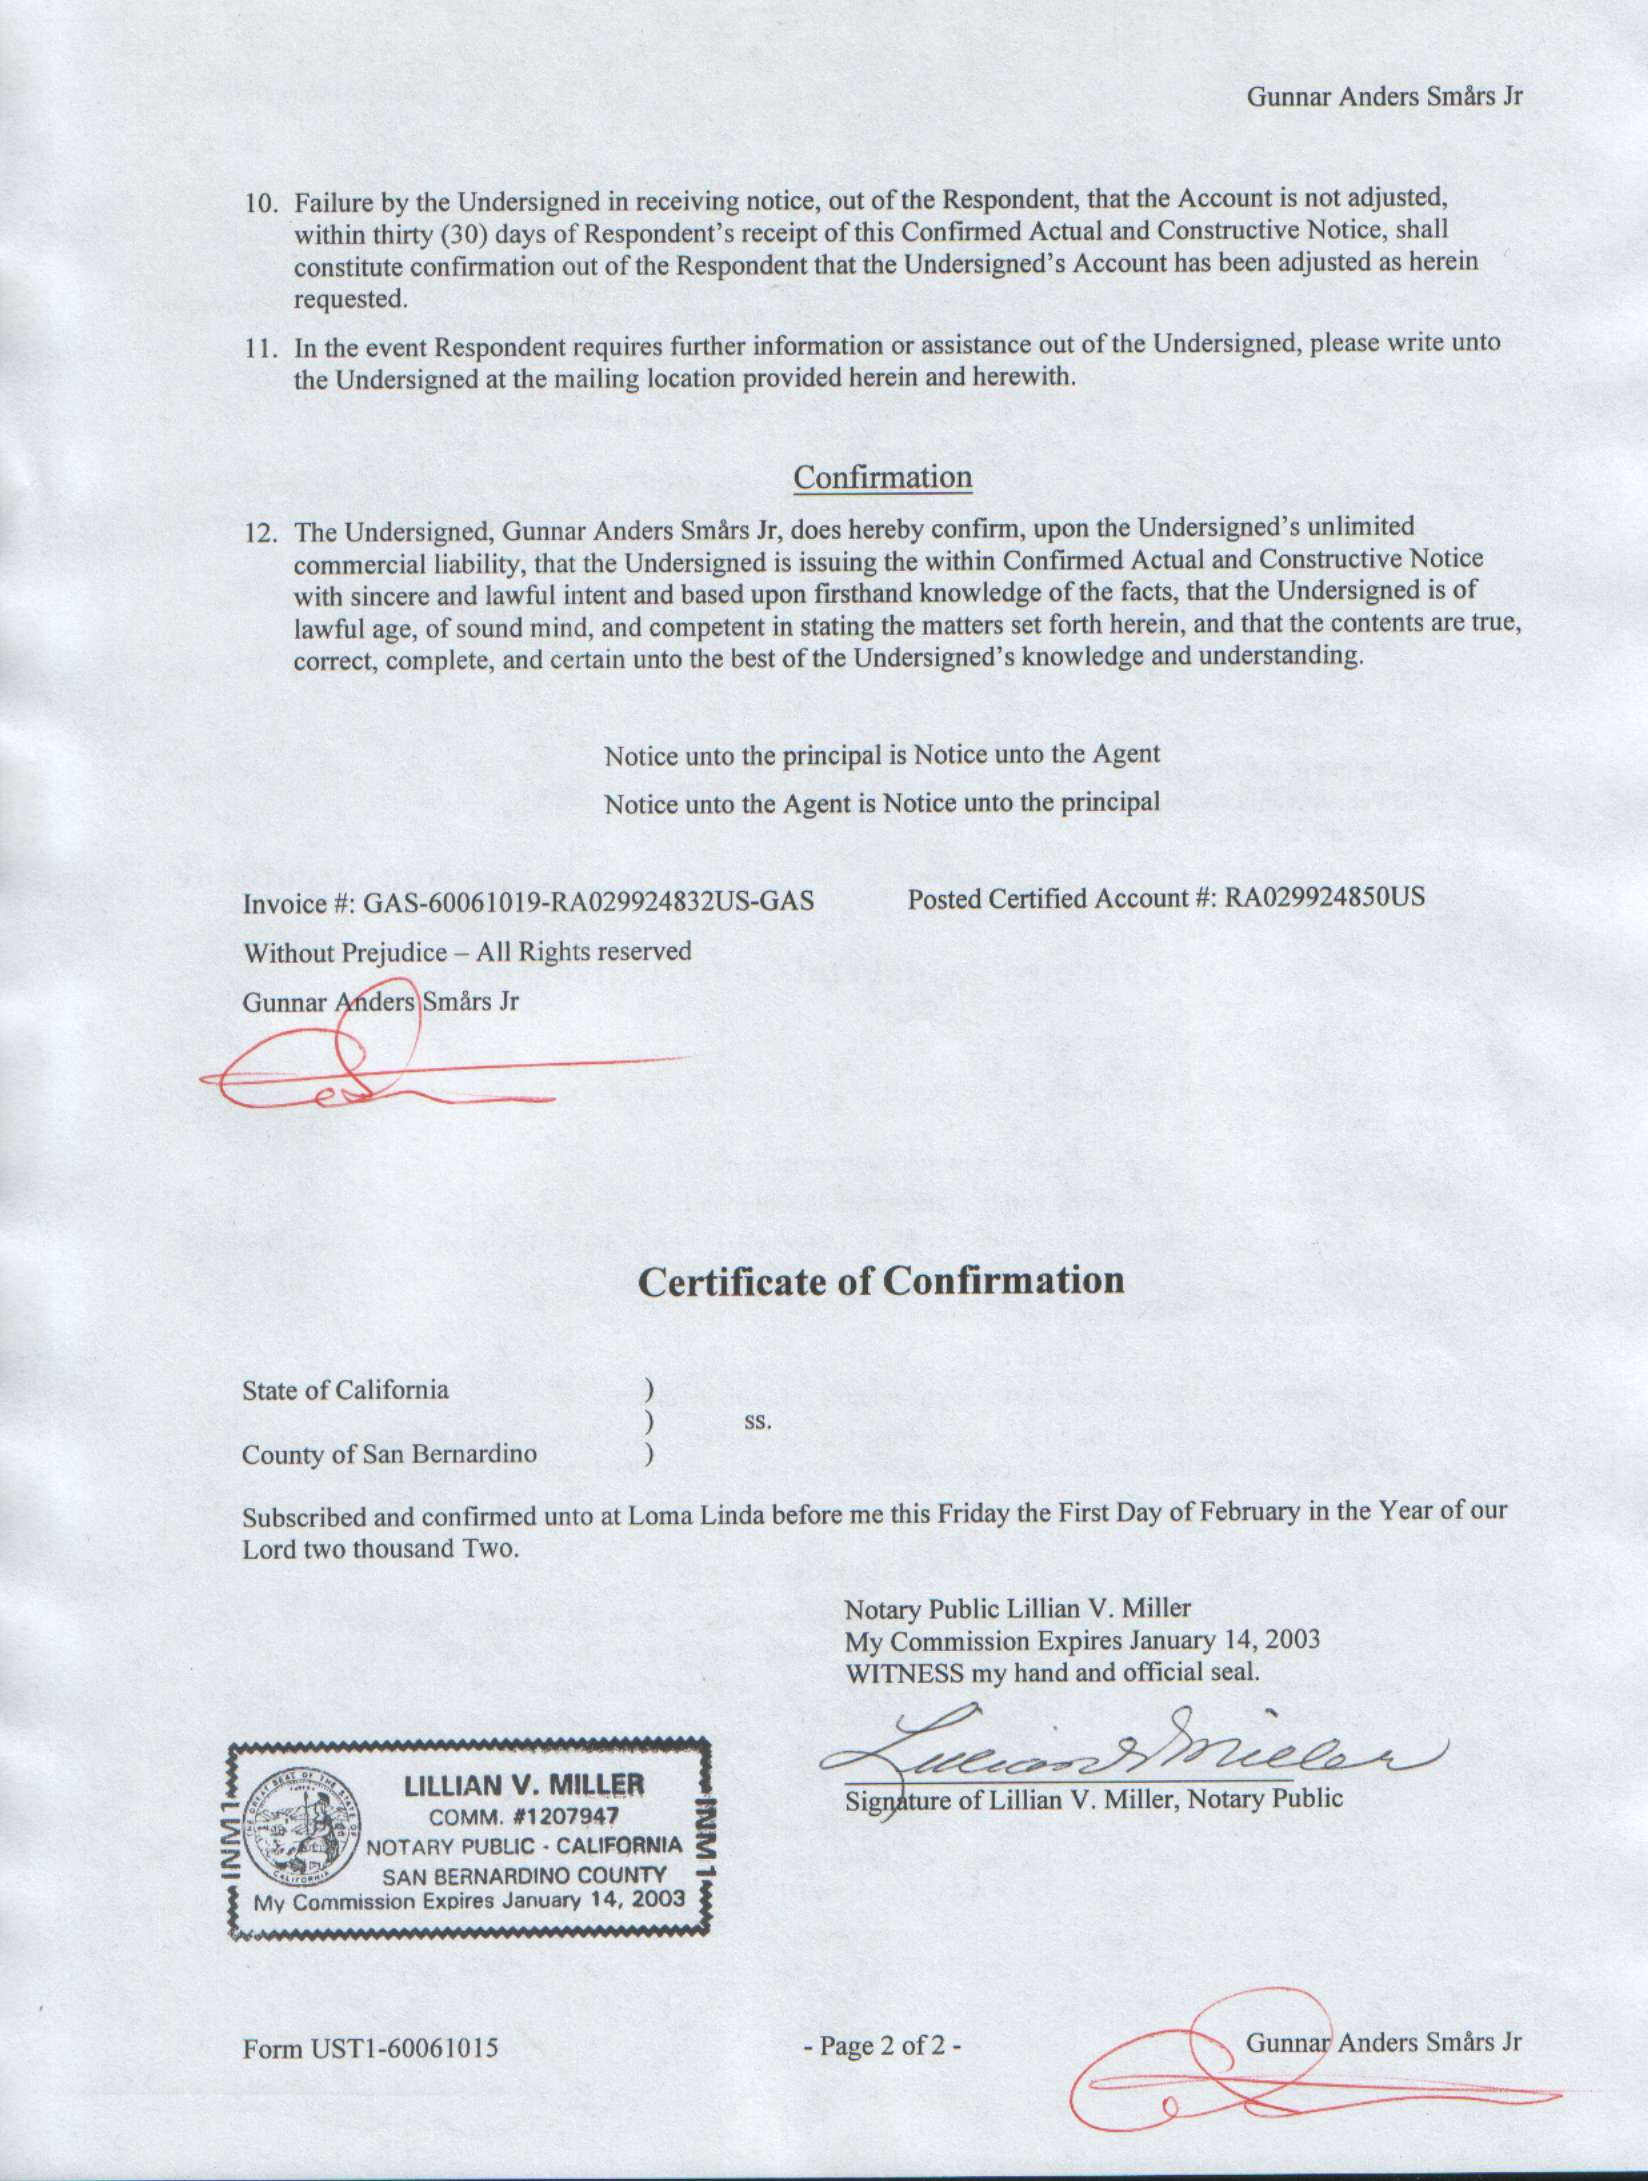 Affidavit Of Service Form With Links To Copies Of Actual